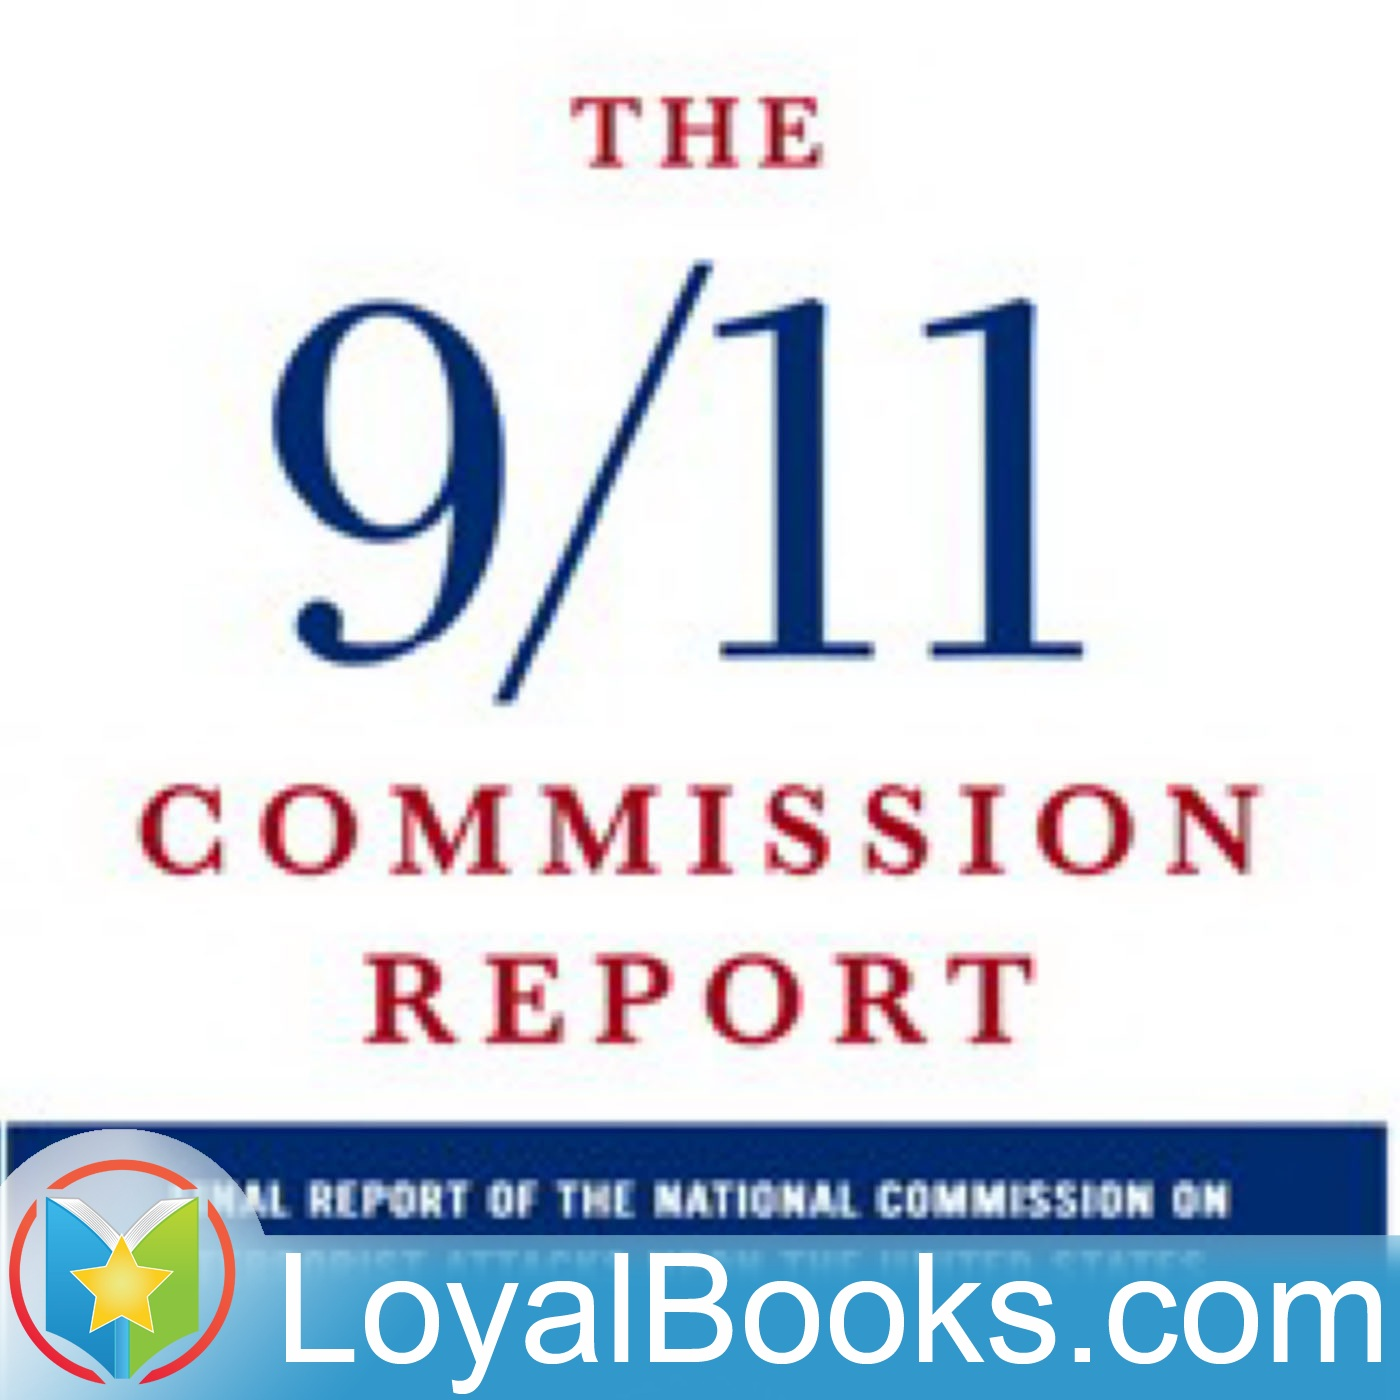 <![CDATA[The 9/11 Commission Report by The 9/11 Commission]]>